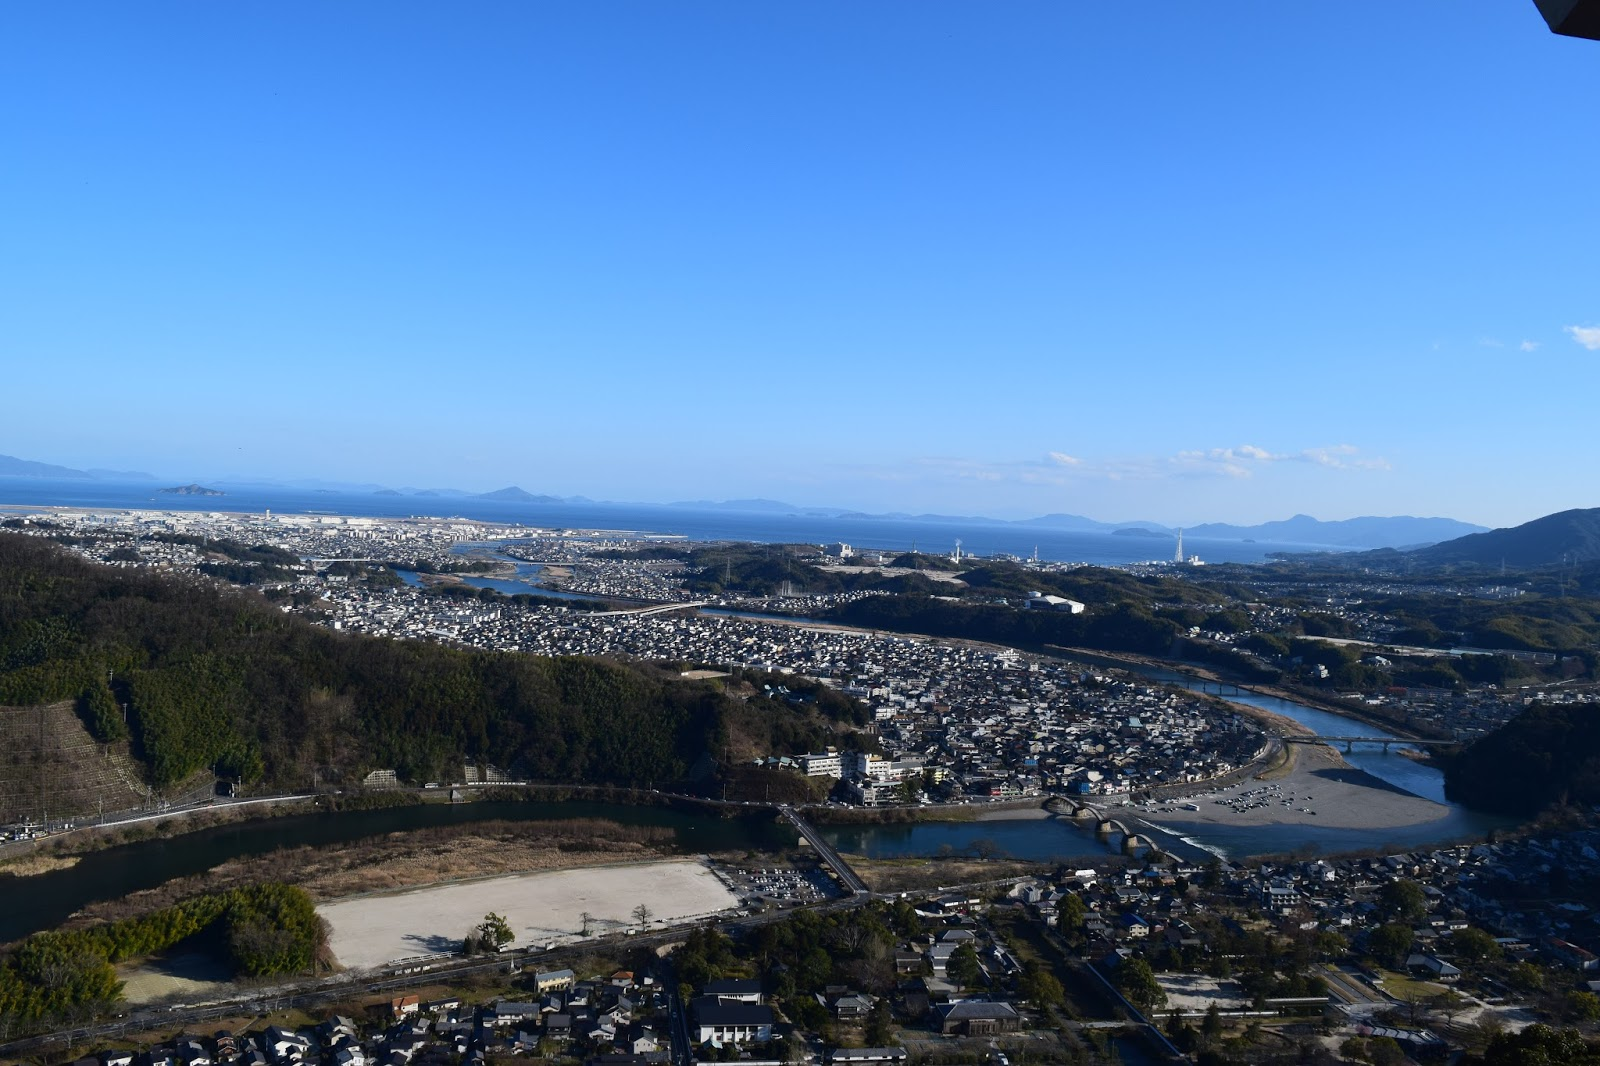 view from Iwakuni castle